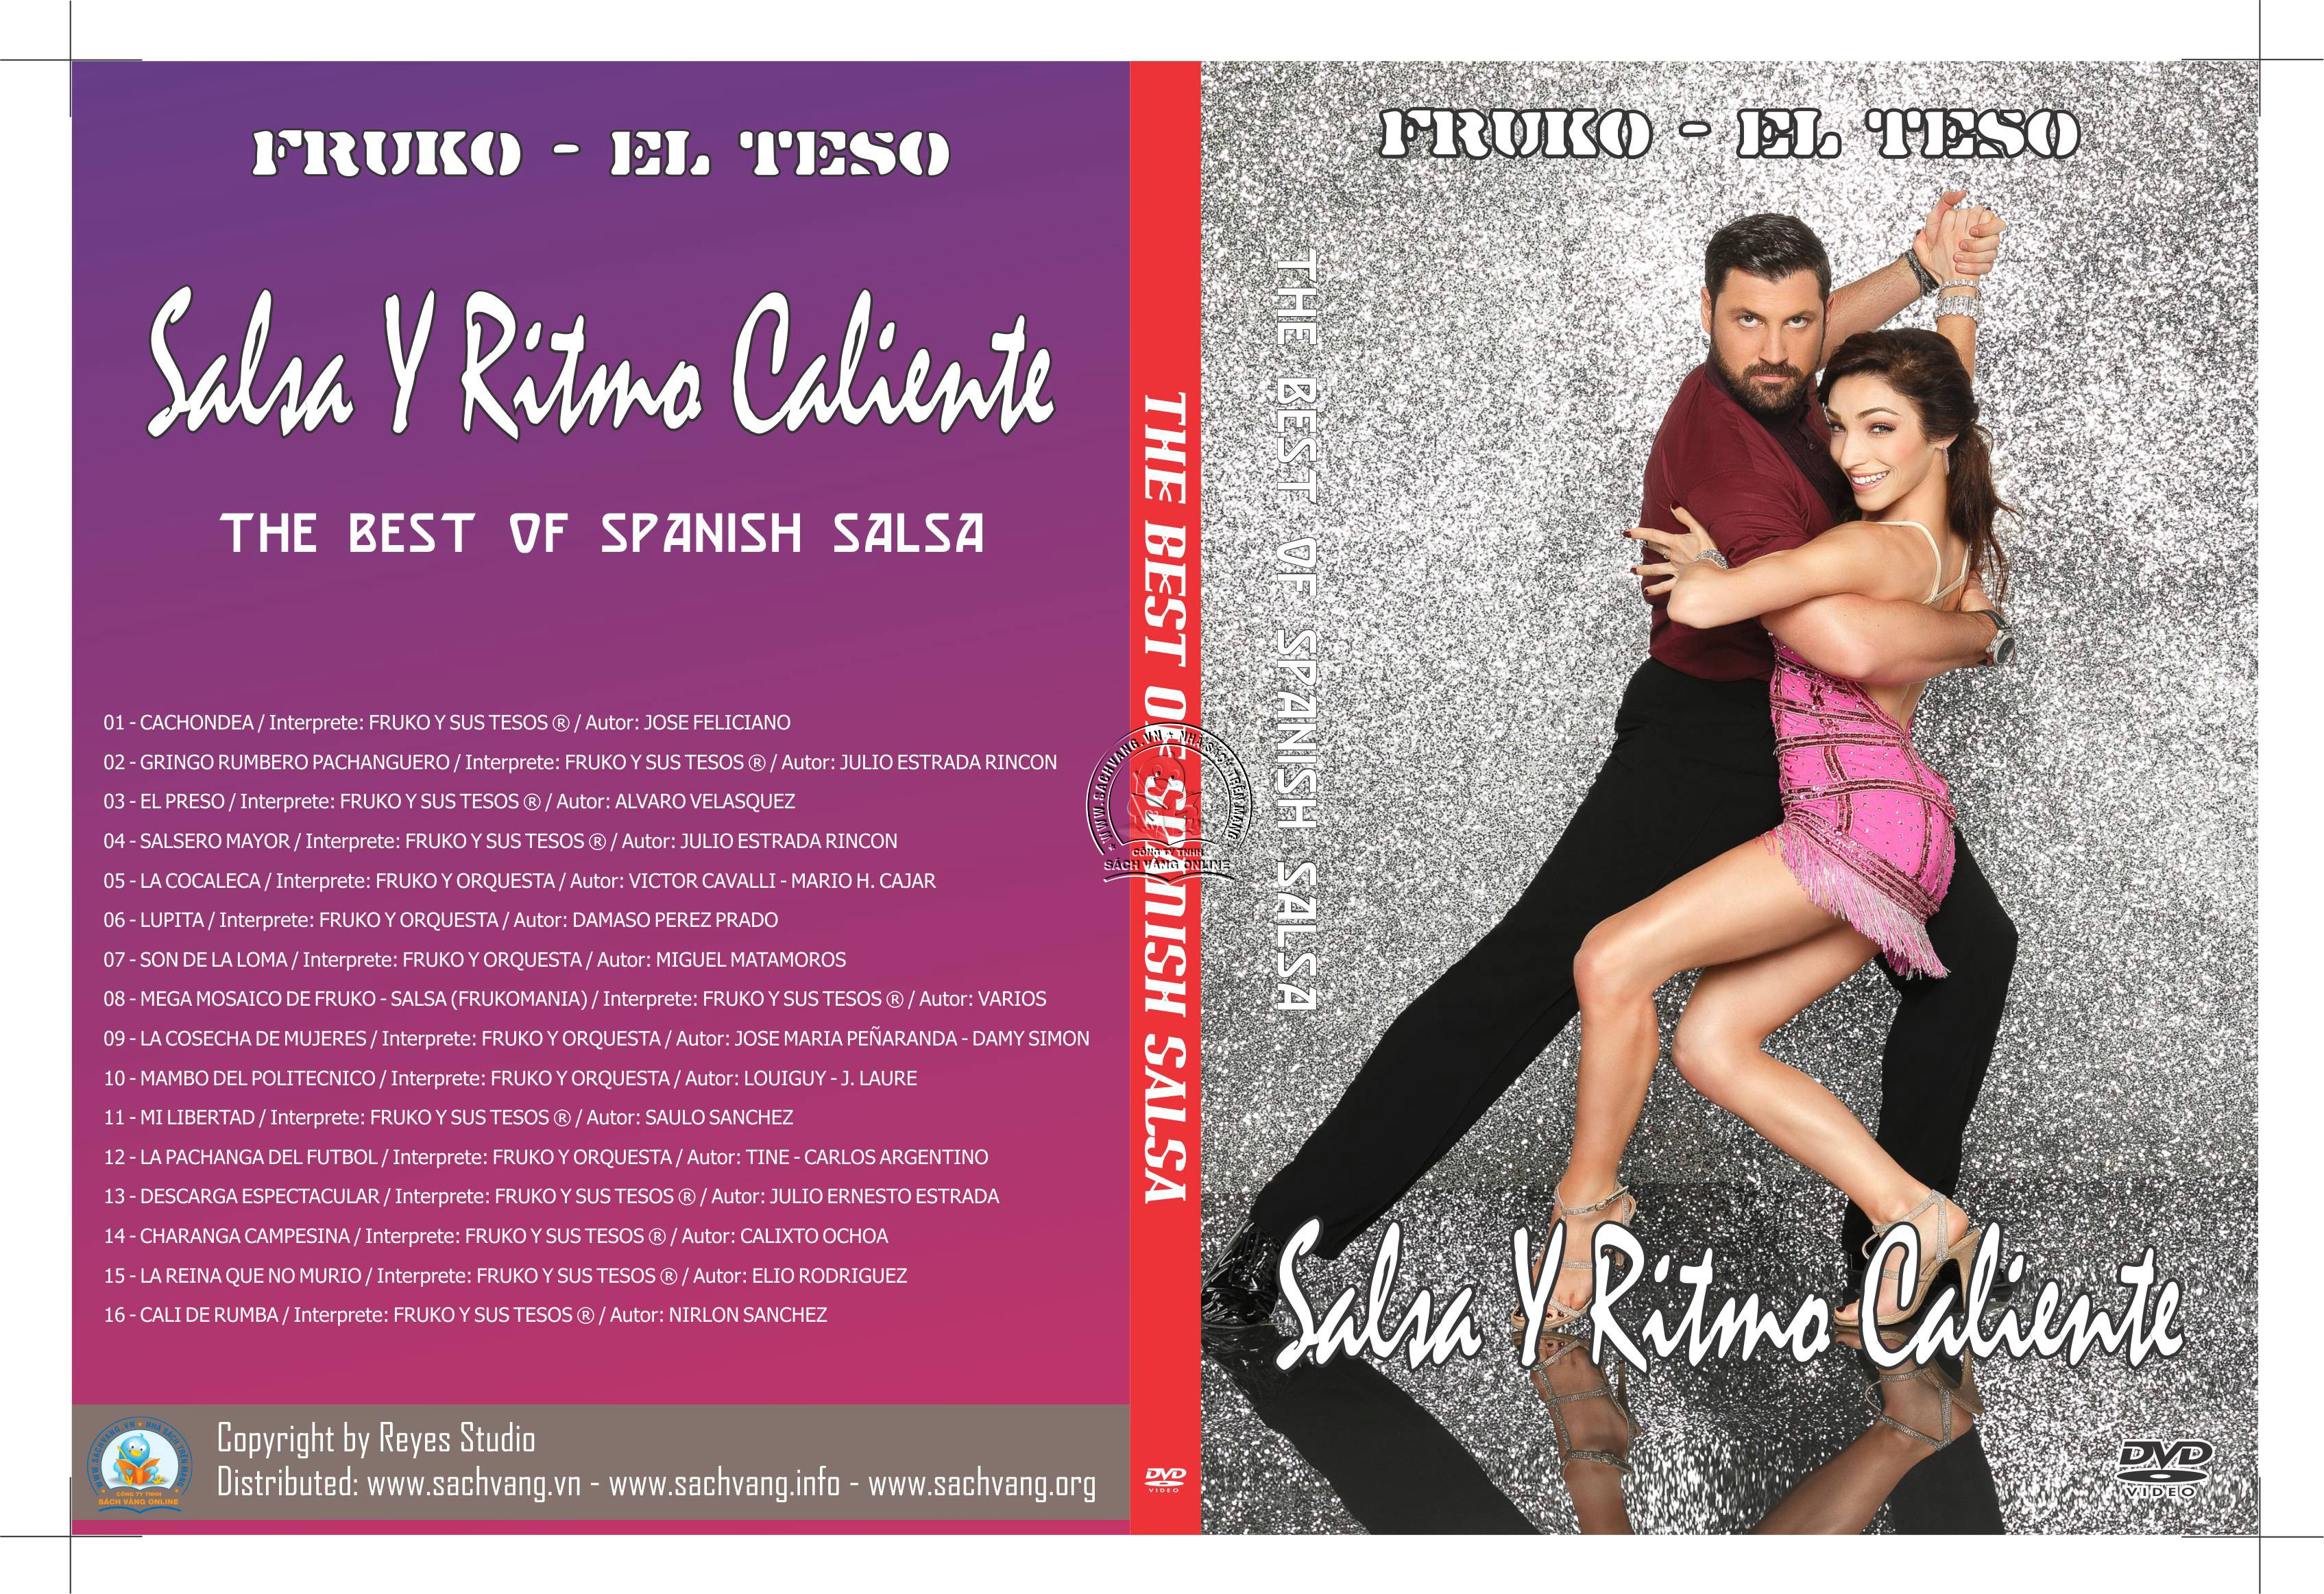 The Best Of Spanish Salsa - Fruko - El Teso! - Salsa Y Ritmo Caliente cover